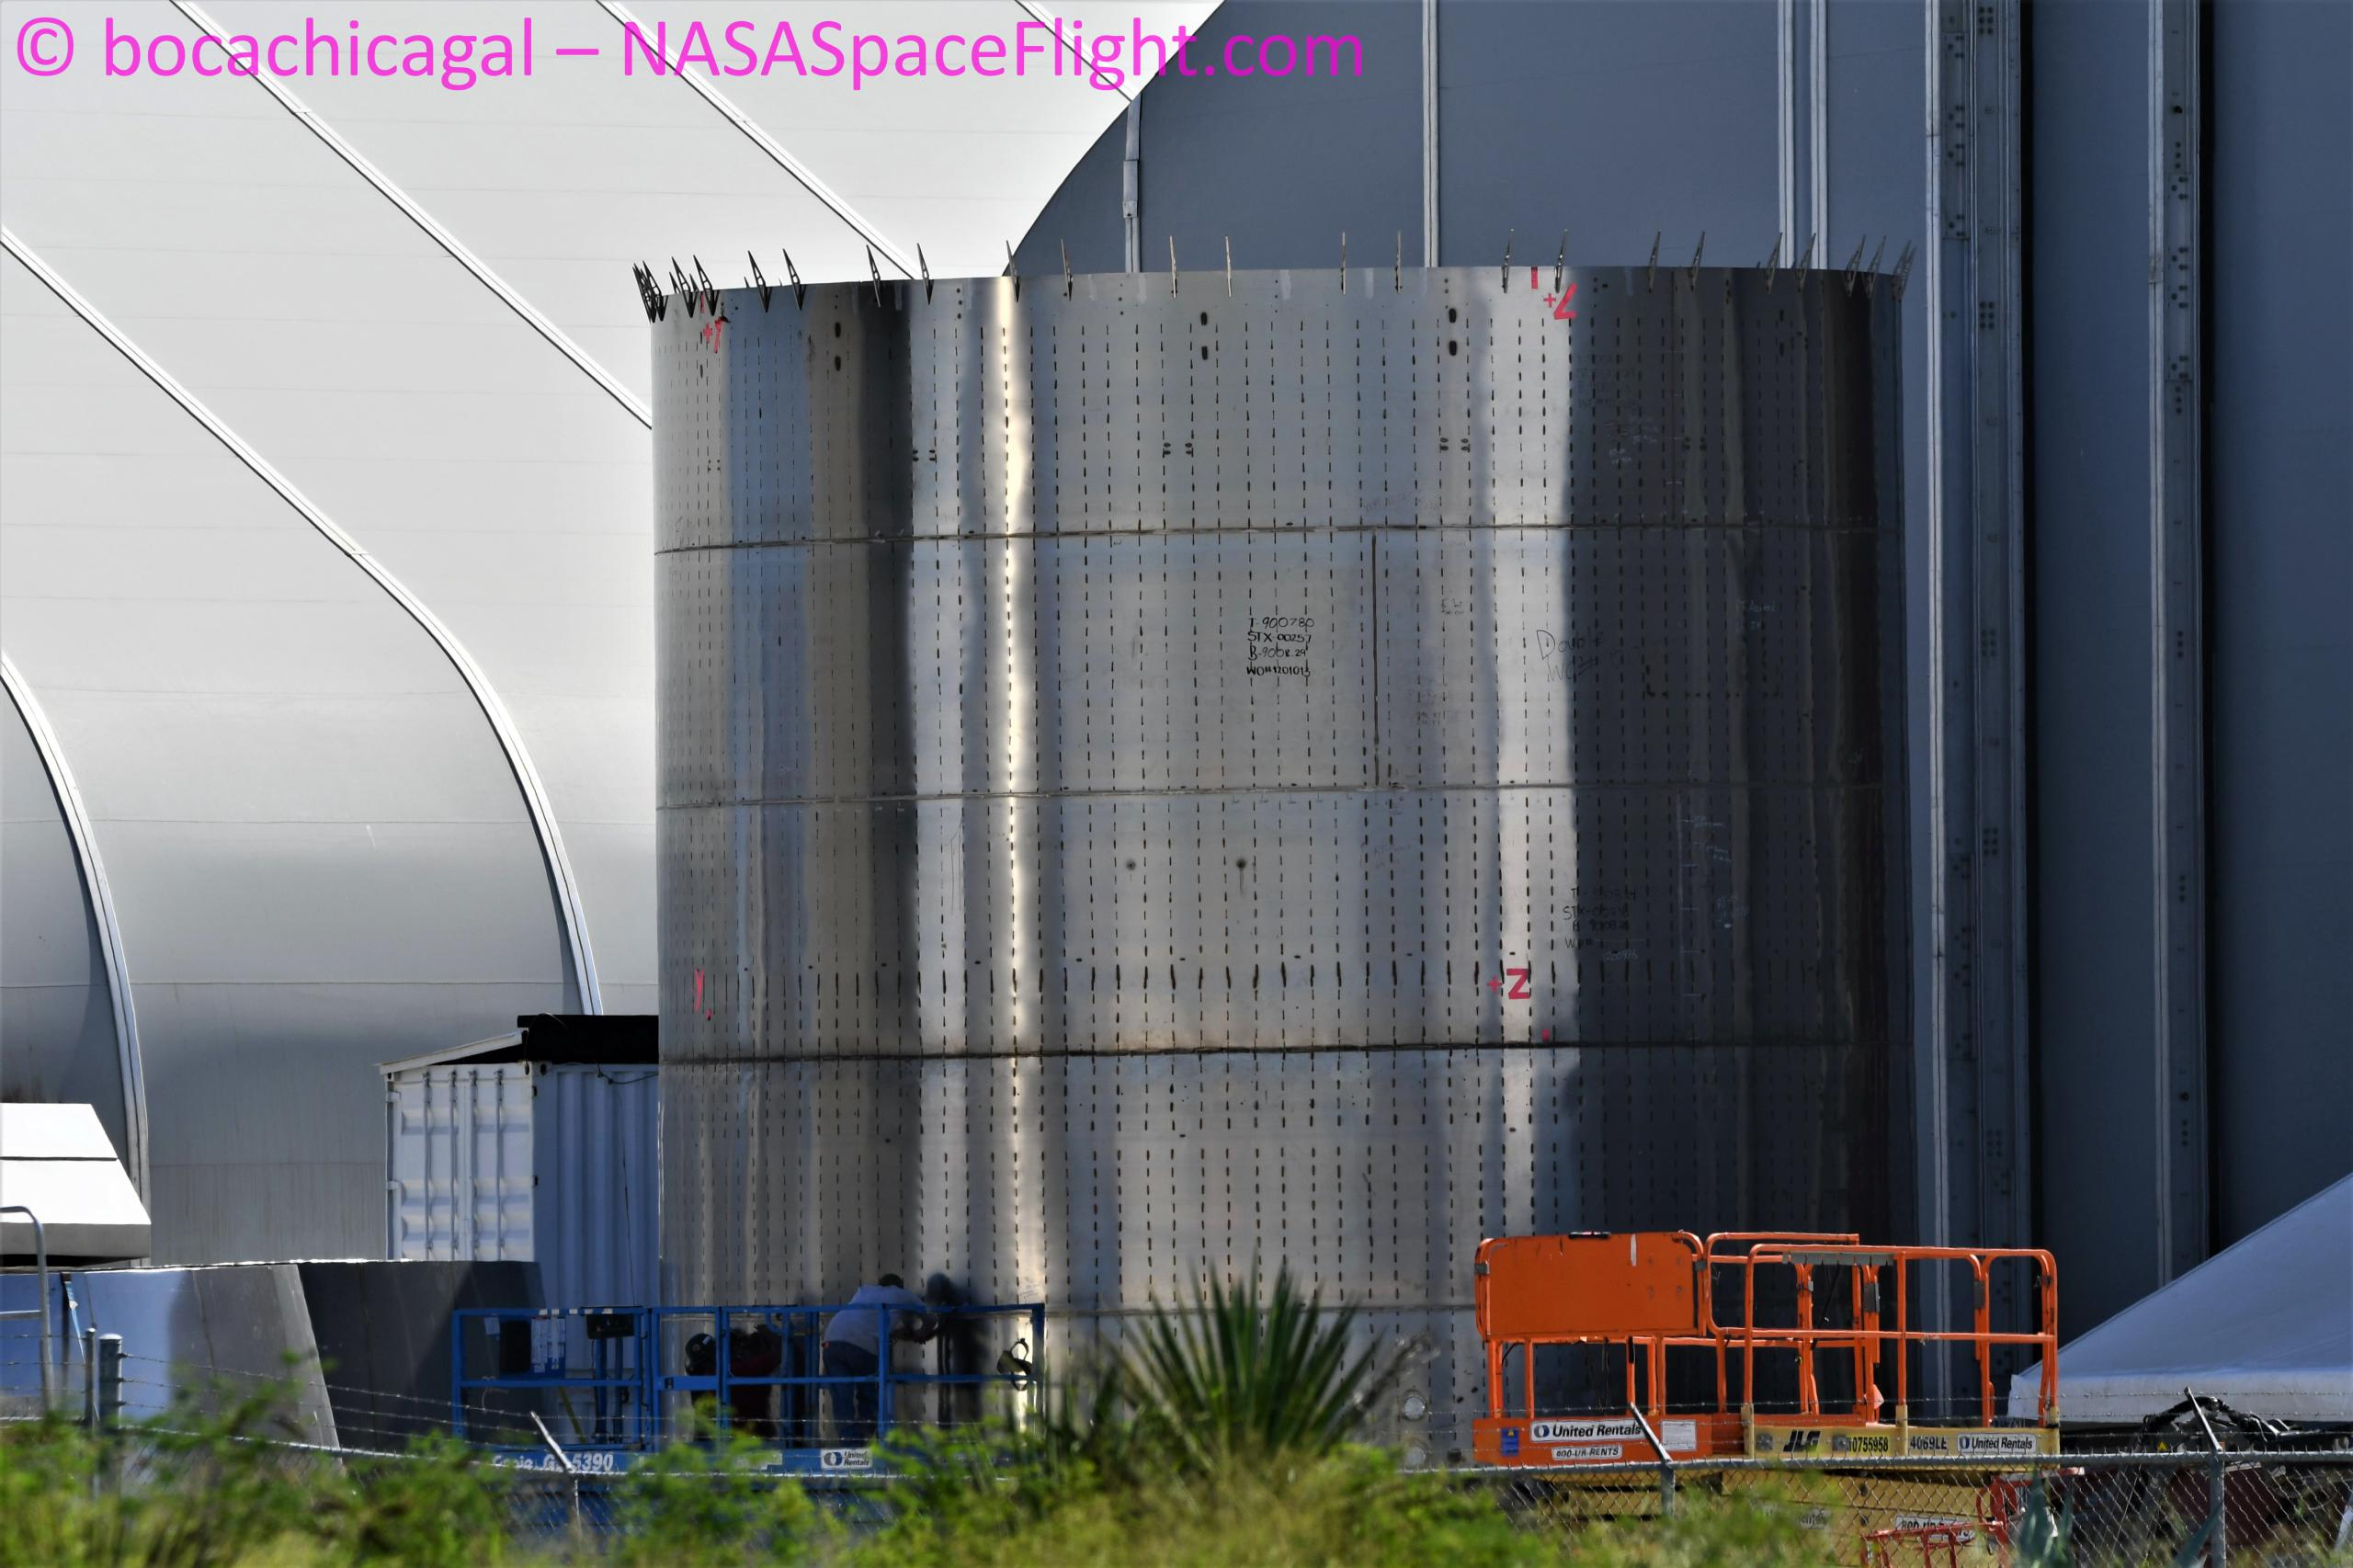 Starship Boca Chica 101520 (NASASpaceflight – bocachicagal) SN8 nose rings 3 (c)